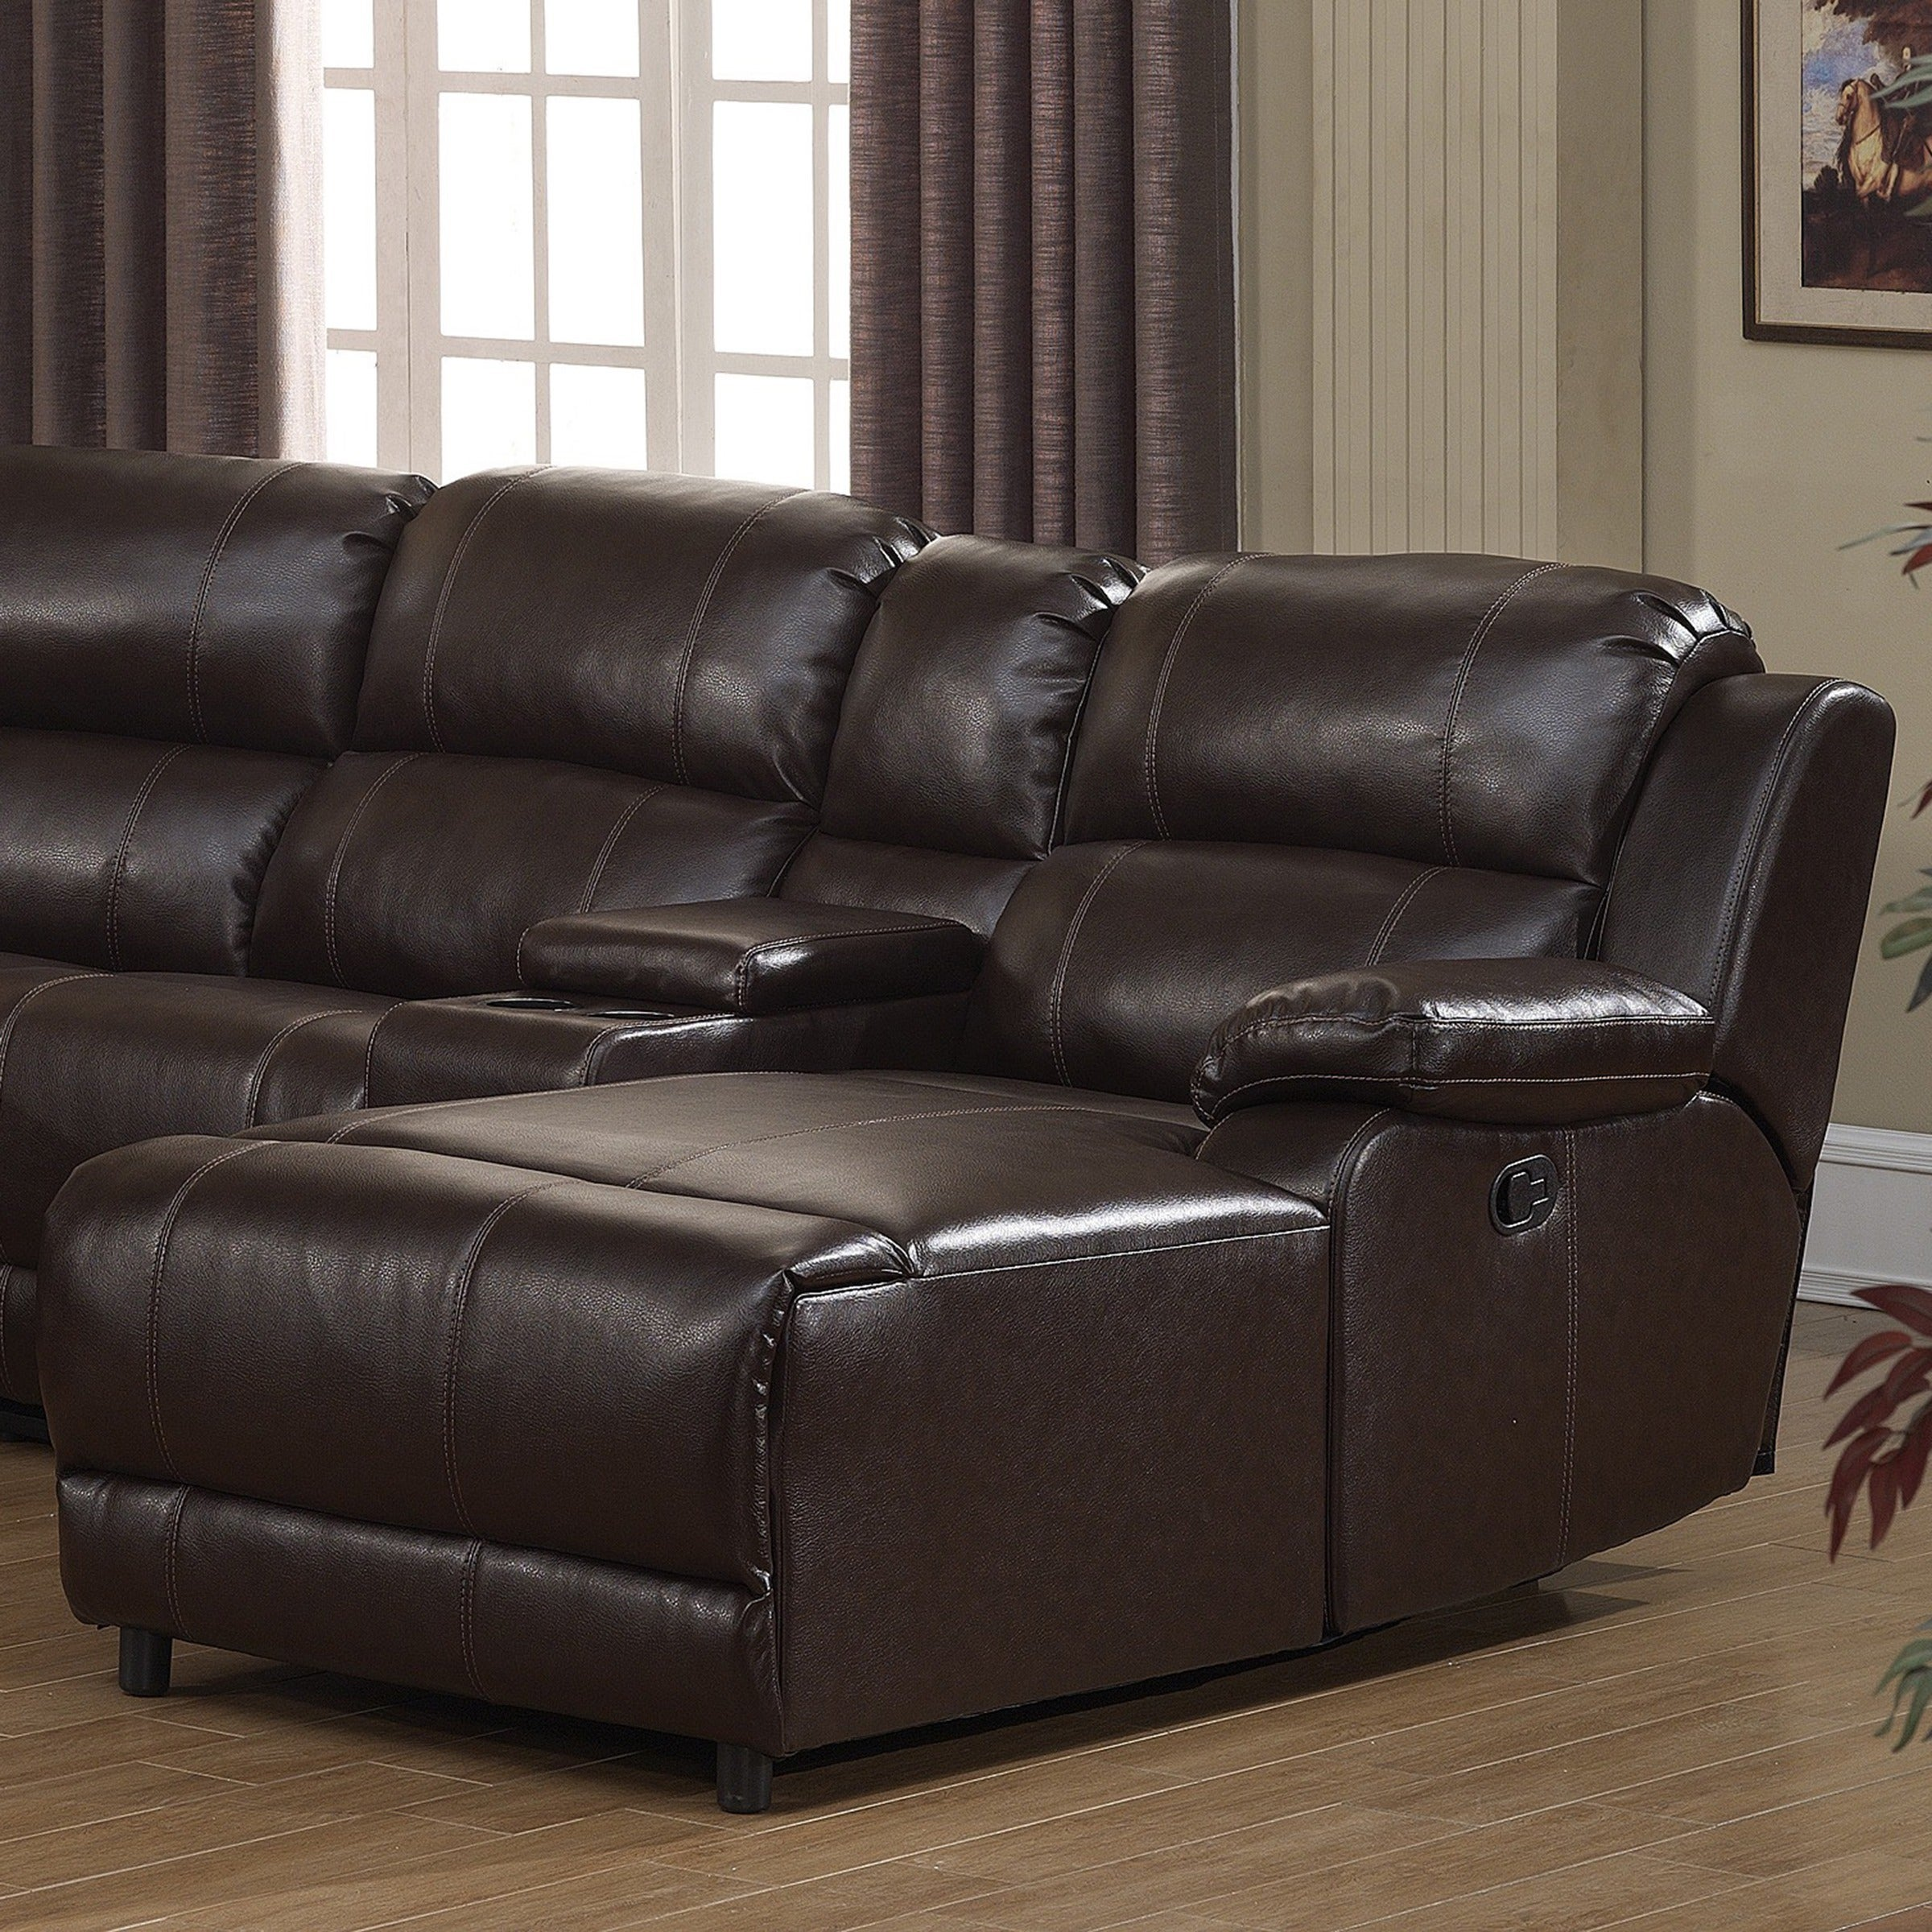 Shop Colton Dark Brown Bonded Leather Sectional Sofa - Free Shipping ...